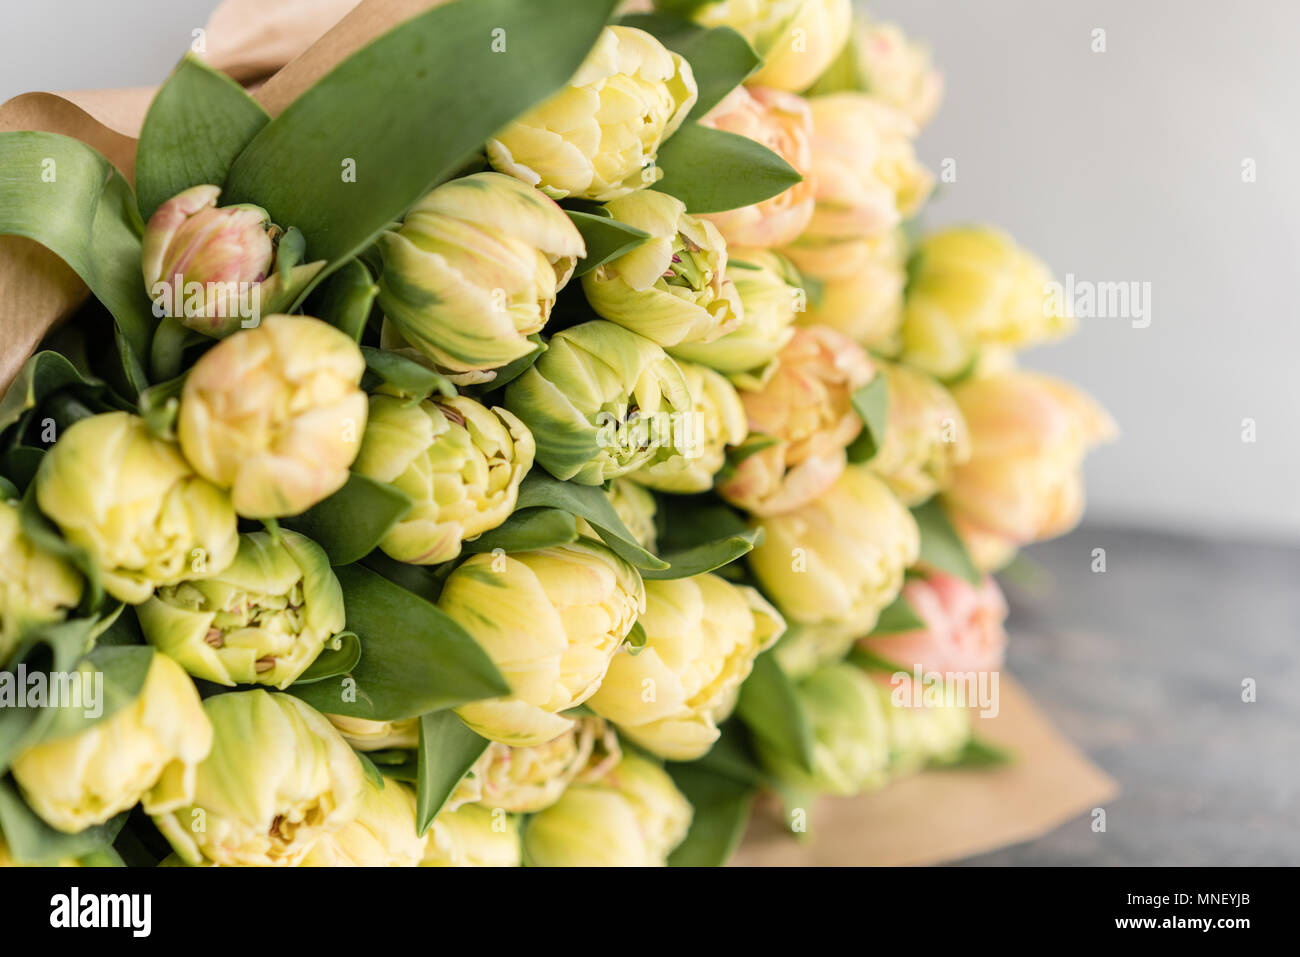 Tulips Of Pastel Yellow Color Big Buds Floral Natural Backdrop